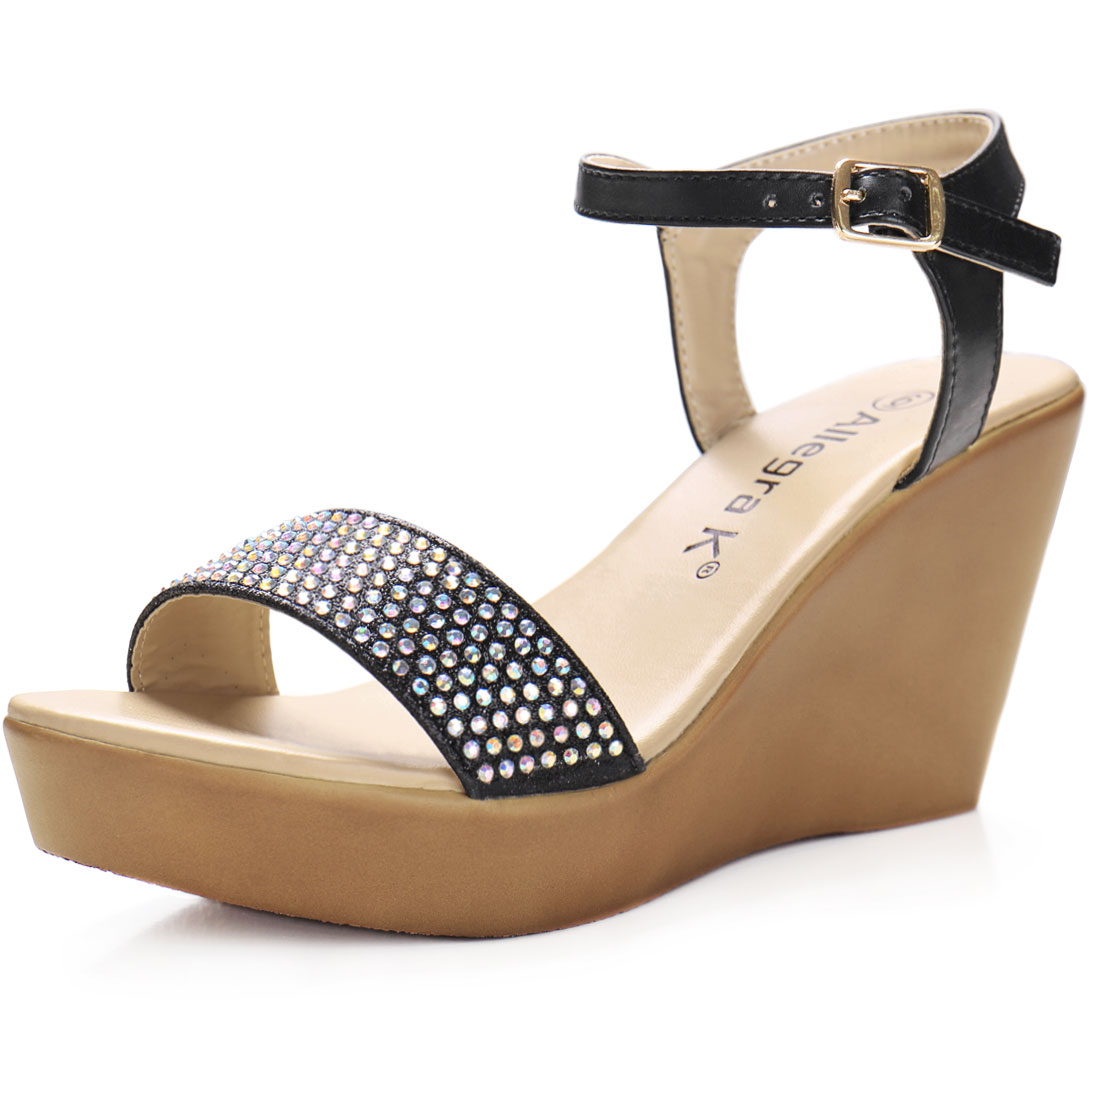 Woman Rhinestones Embellished Open Toe Wedge Sandals Black US 6